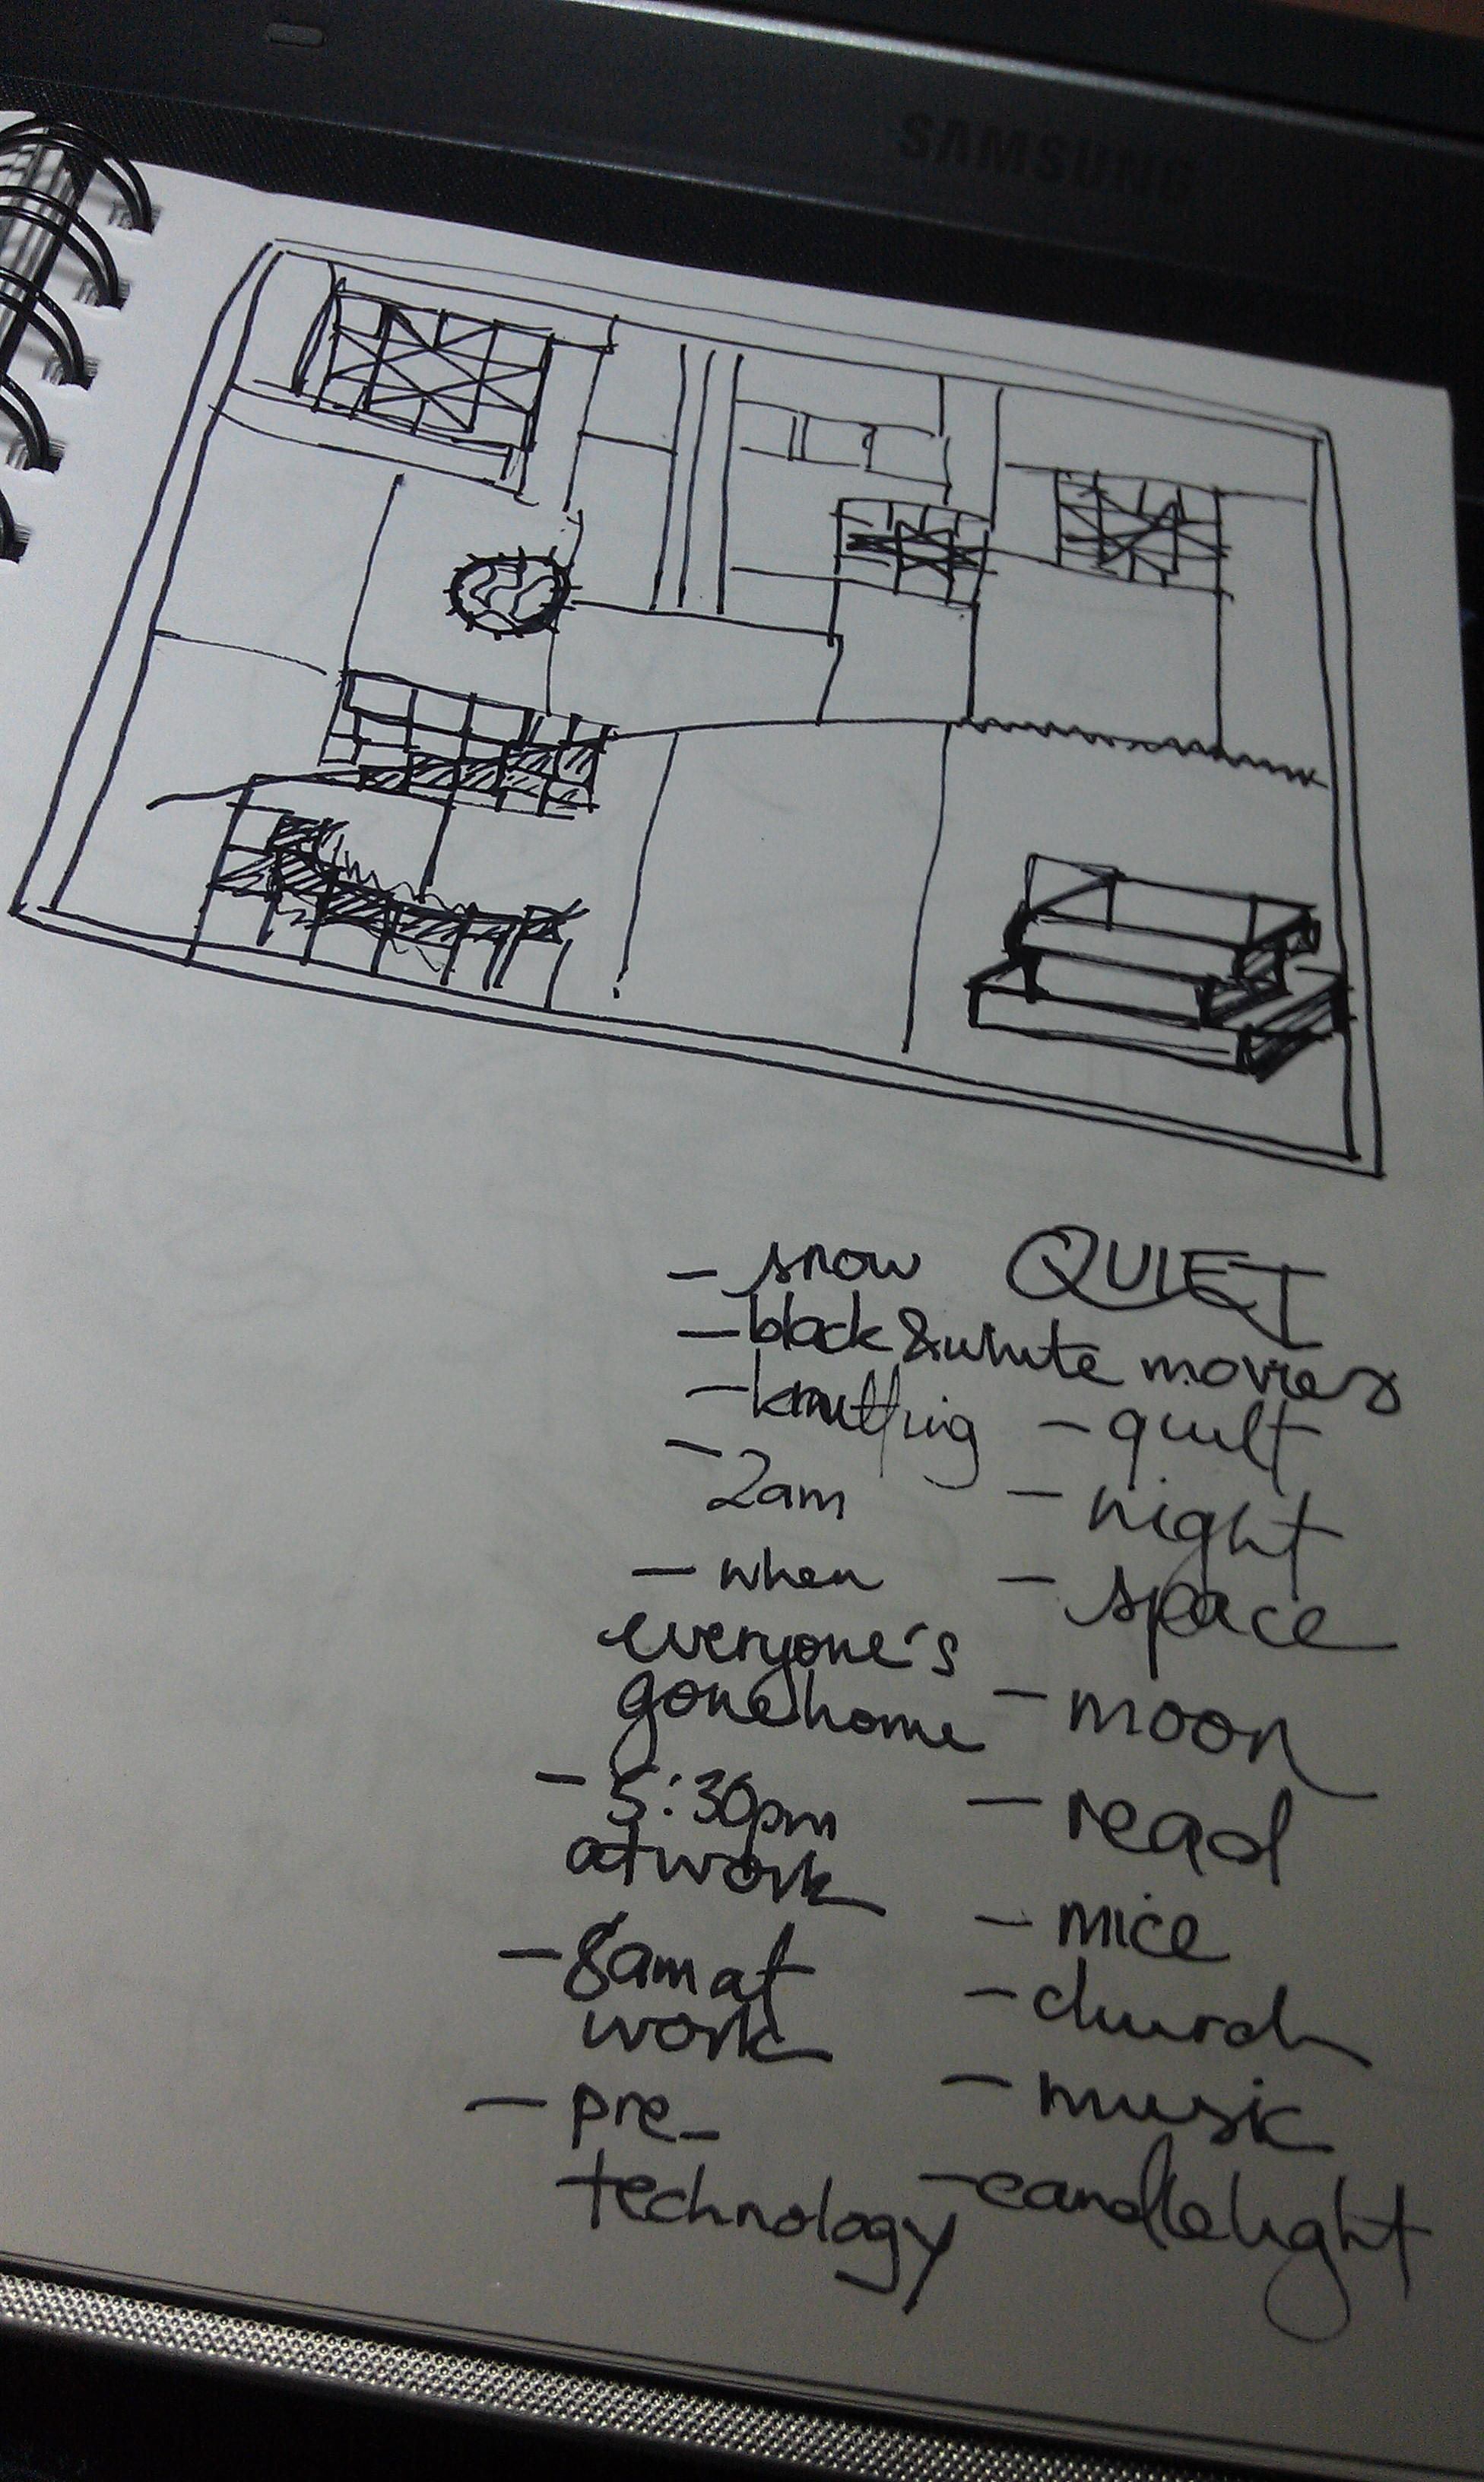 Quiet - image 1 - student project